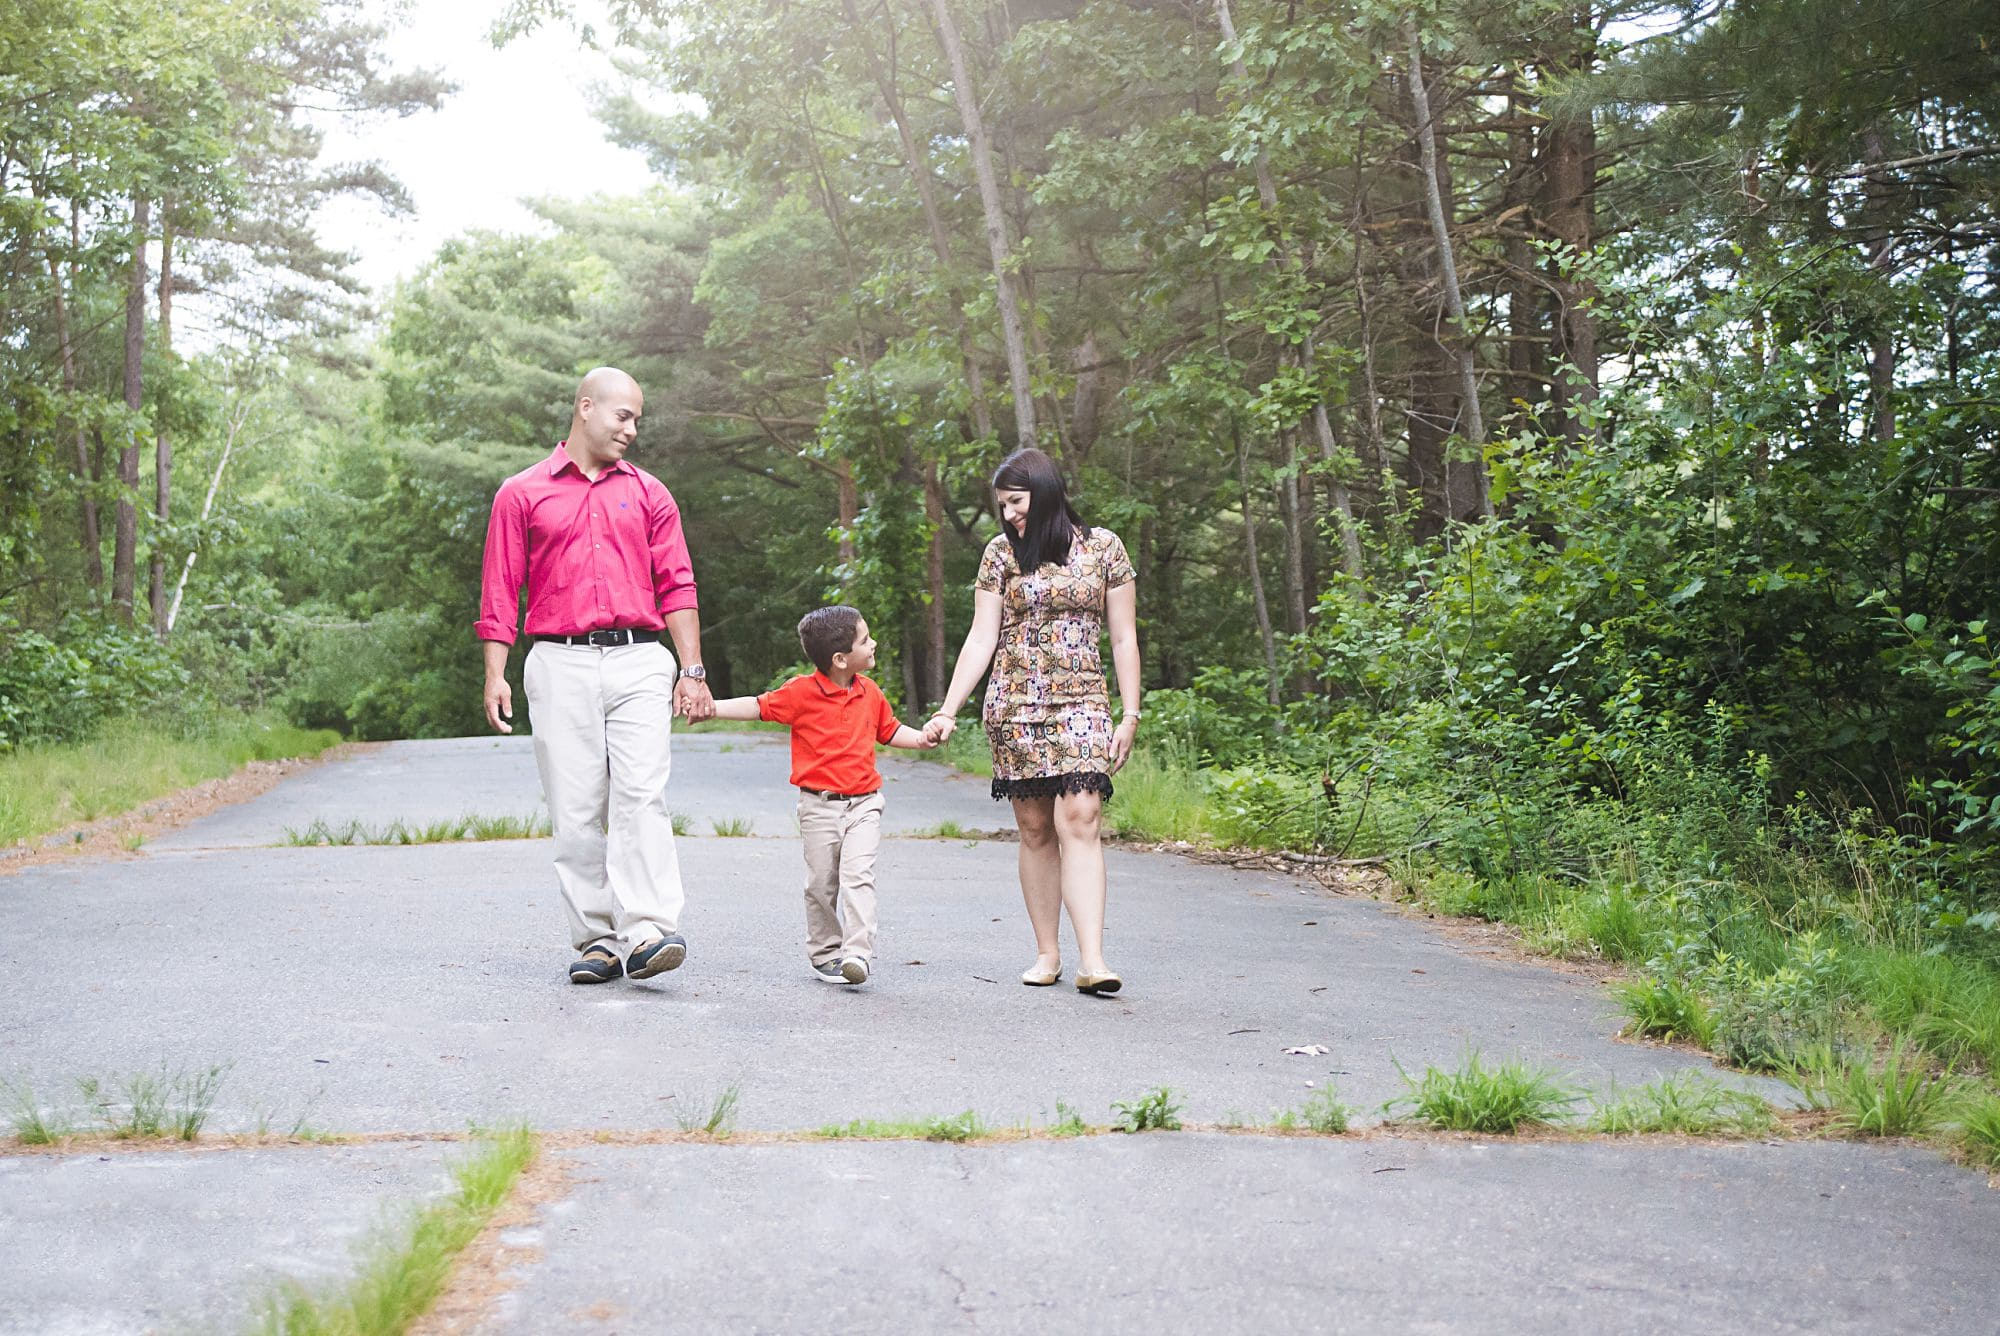 Family of three casual photo walking through a park with beautiful trees and sunlight wearing pink and orange